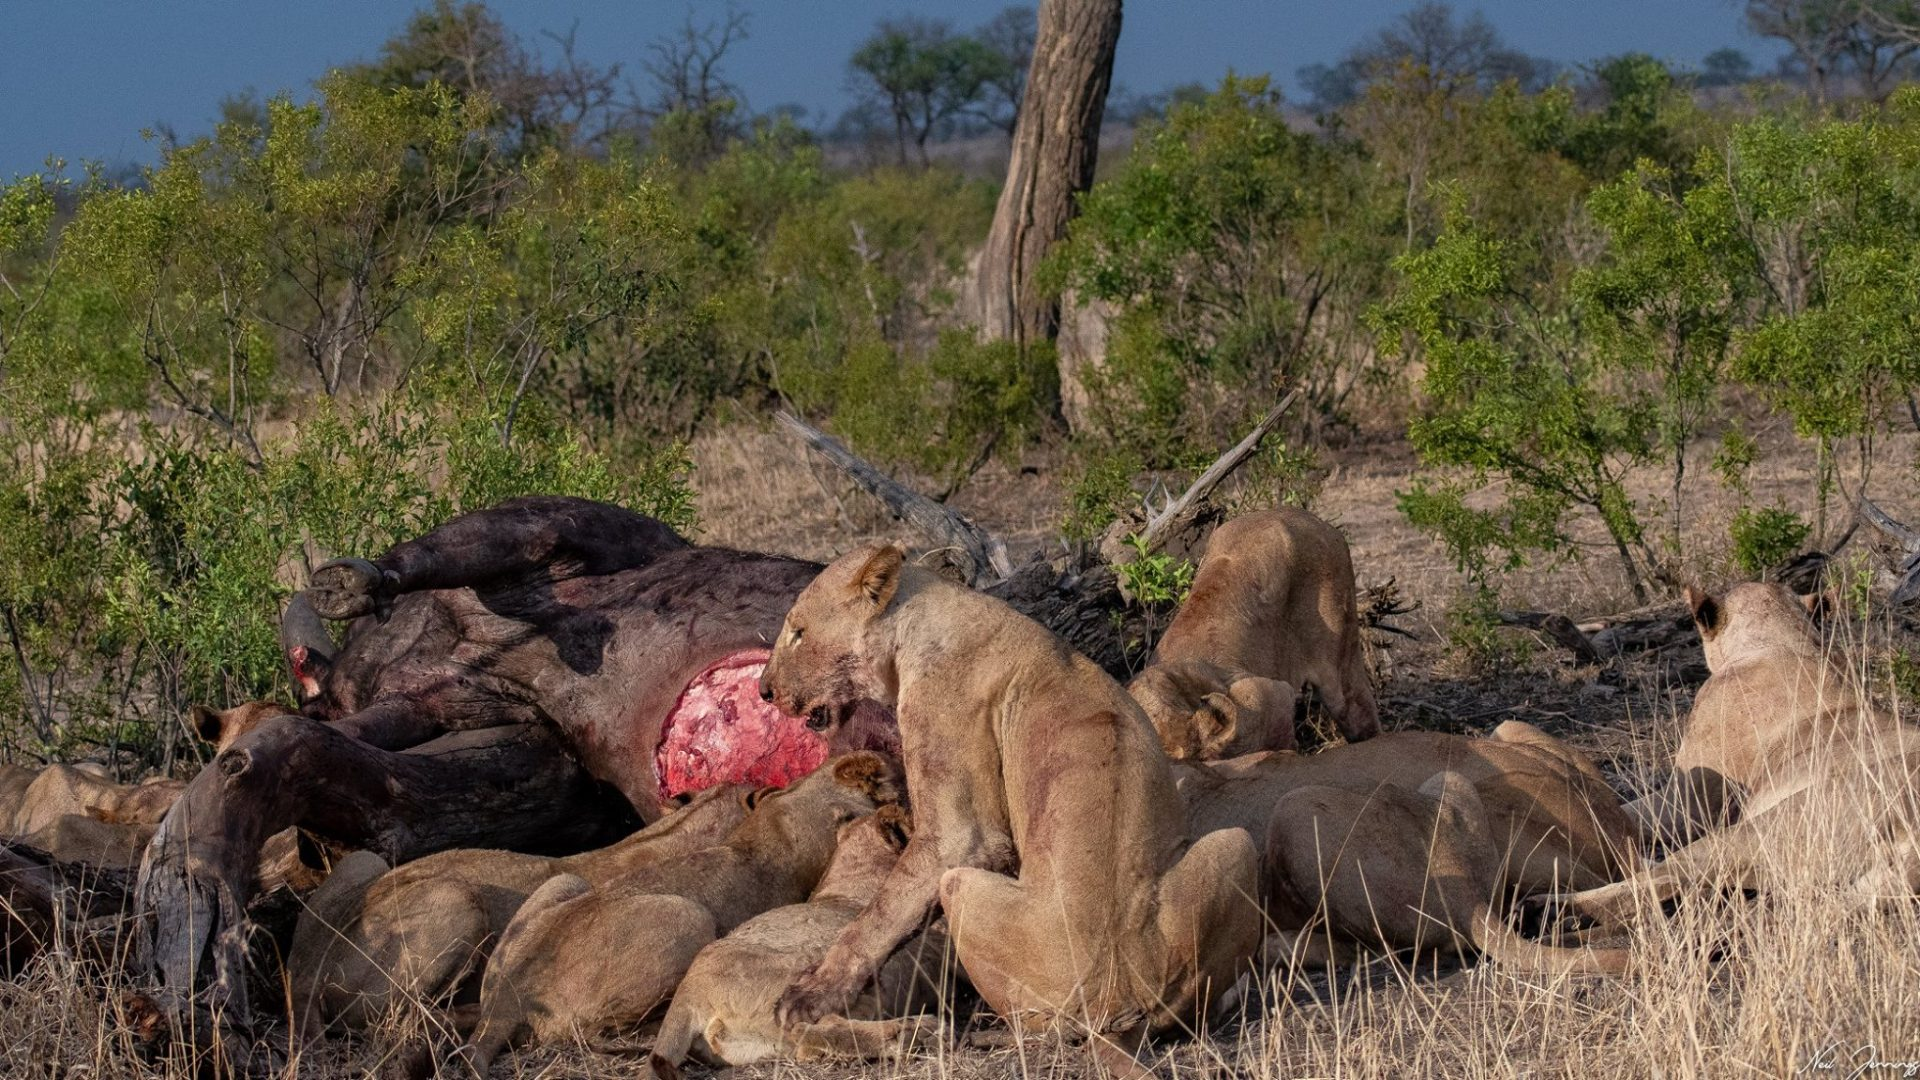 ac19ba4d56d Or maybe, after so many years sharing similar territories, the lions know  each other so well, and are willing to suspend their territorial instincts  and ...